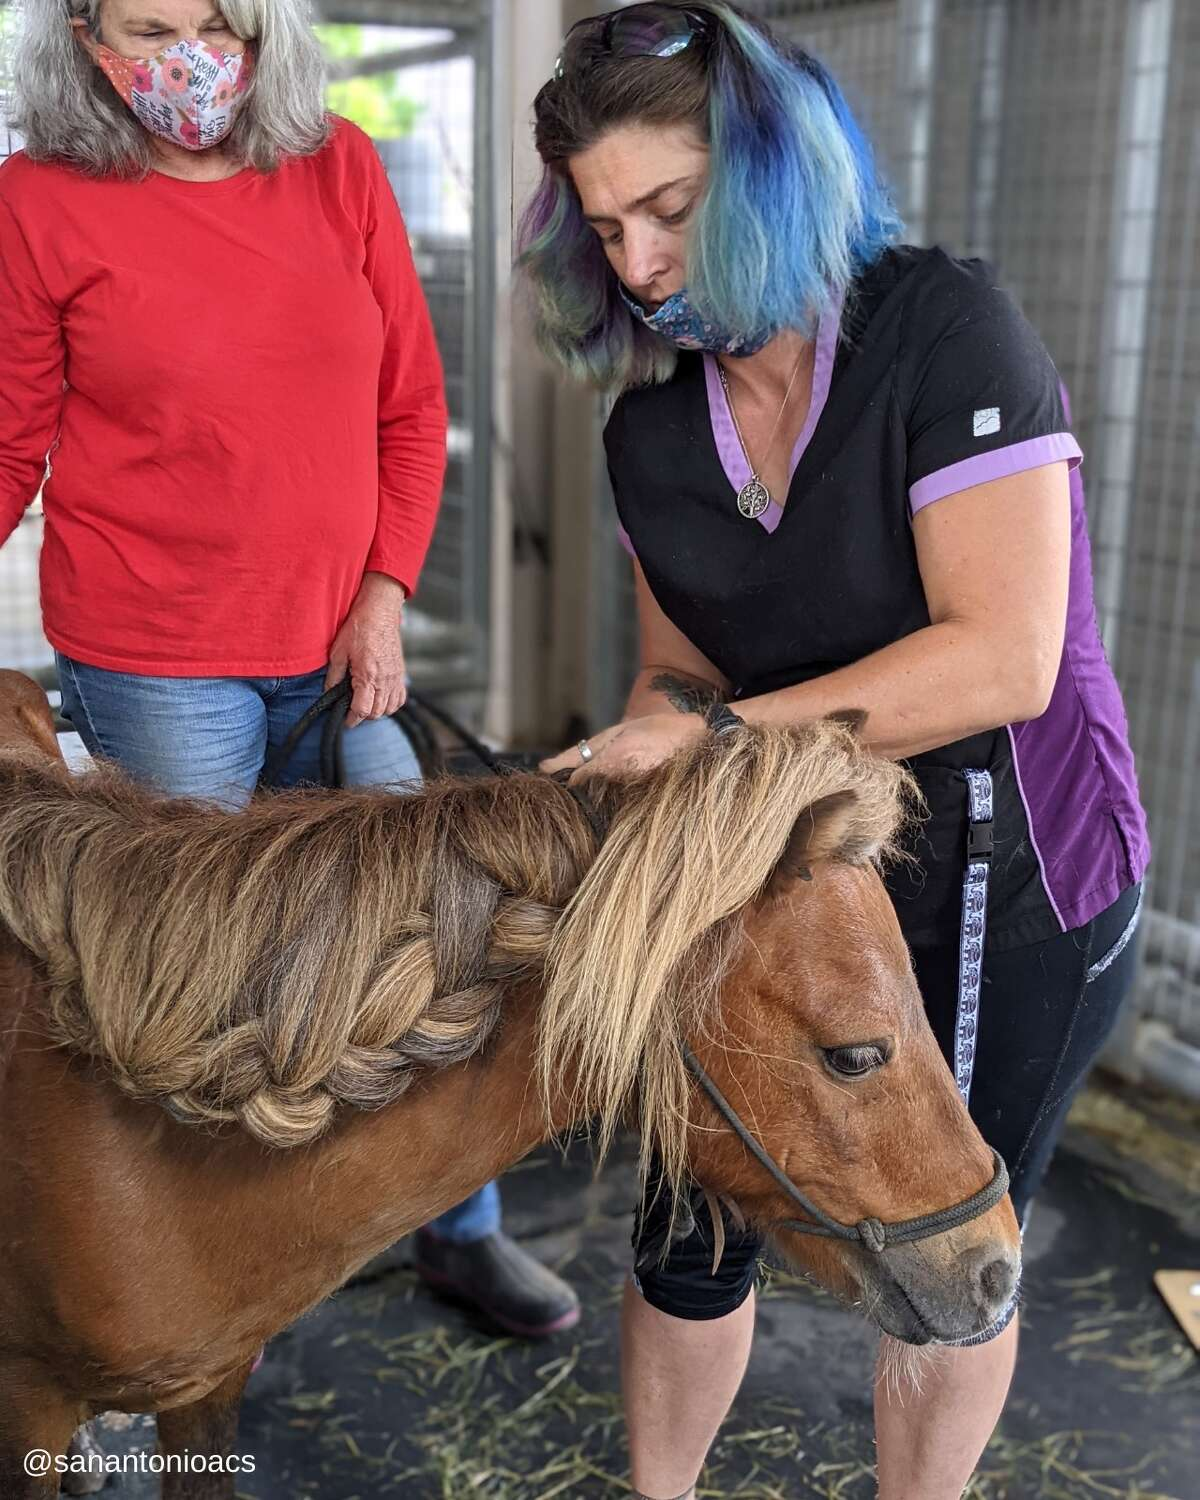 """The Animal Care Services recently rescued a pony that looks like the precious Li'l Sebastian from the iconic television series """"Parks and Recreation."""""""